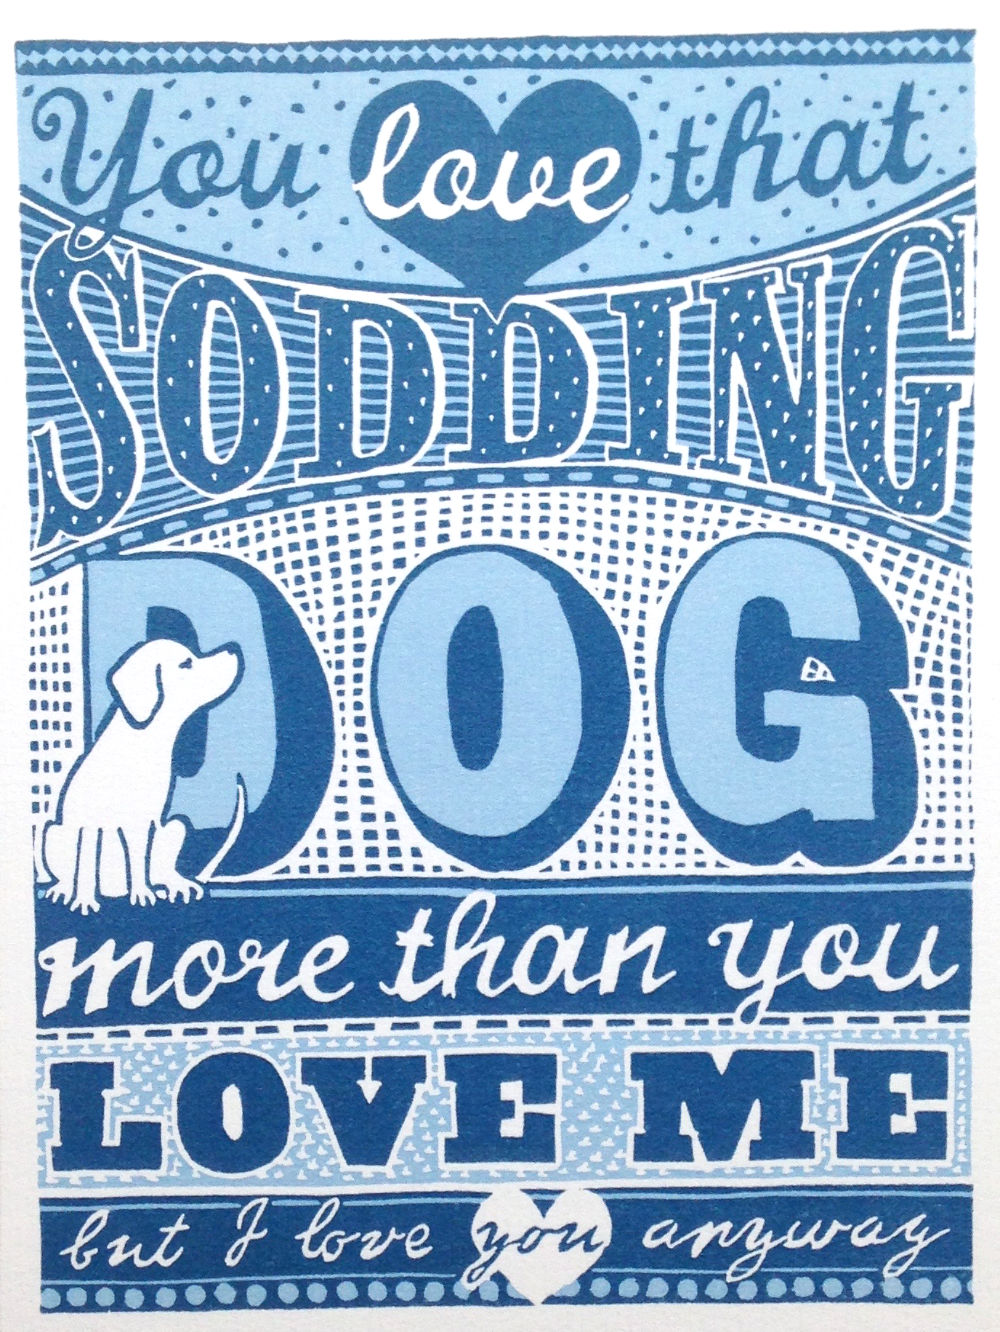 Hand Lettered Design Print | The Enlightened Hound